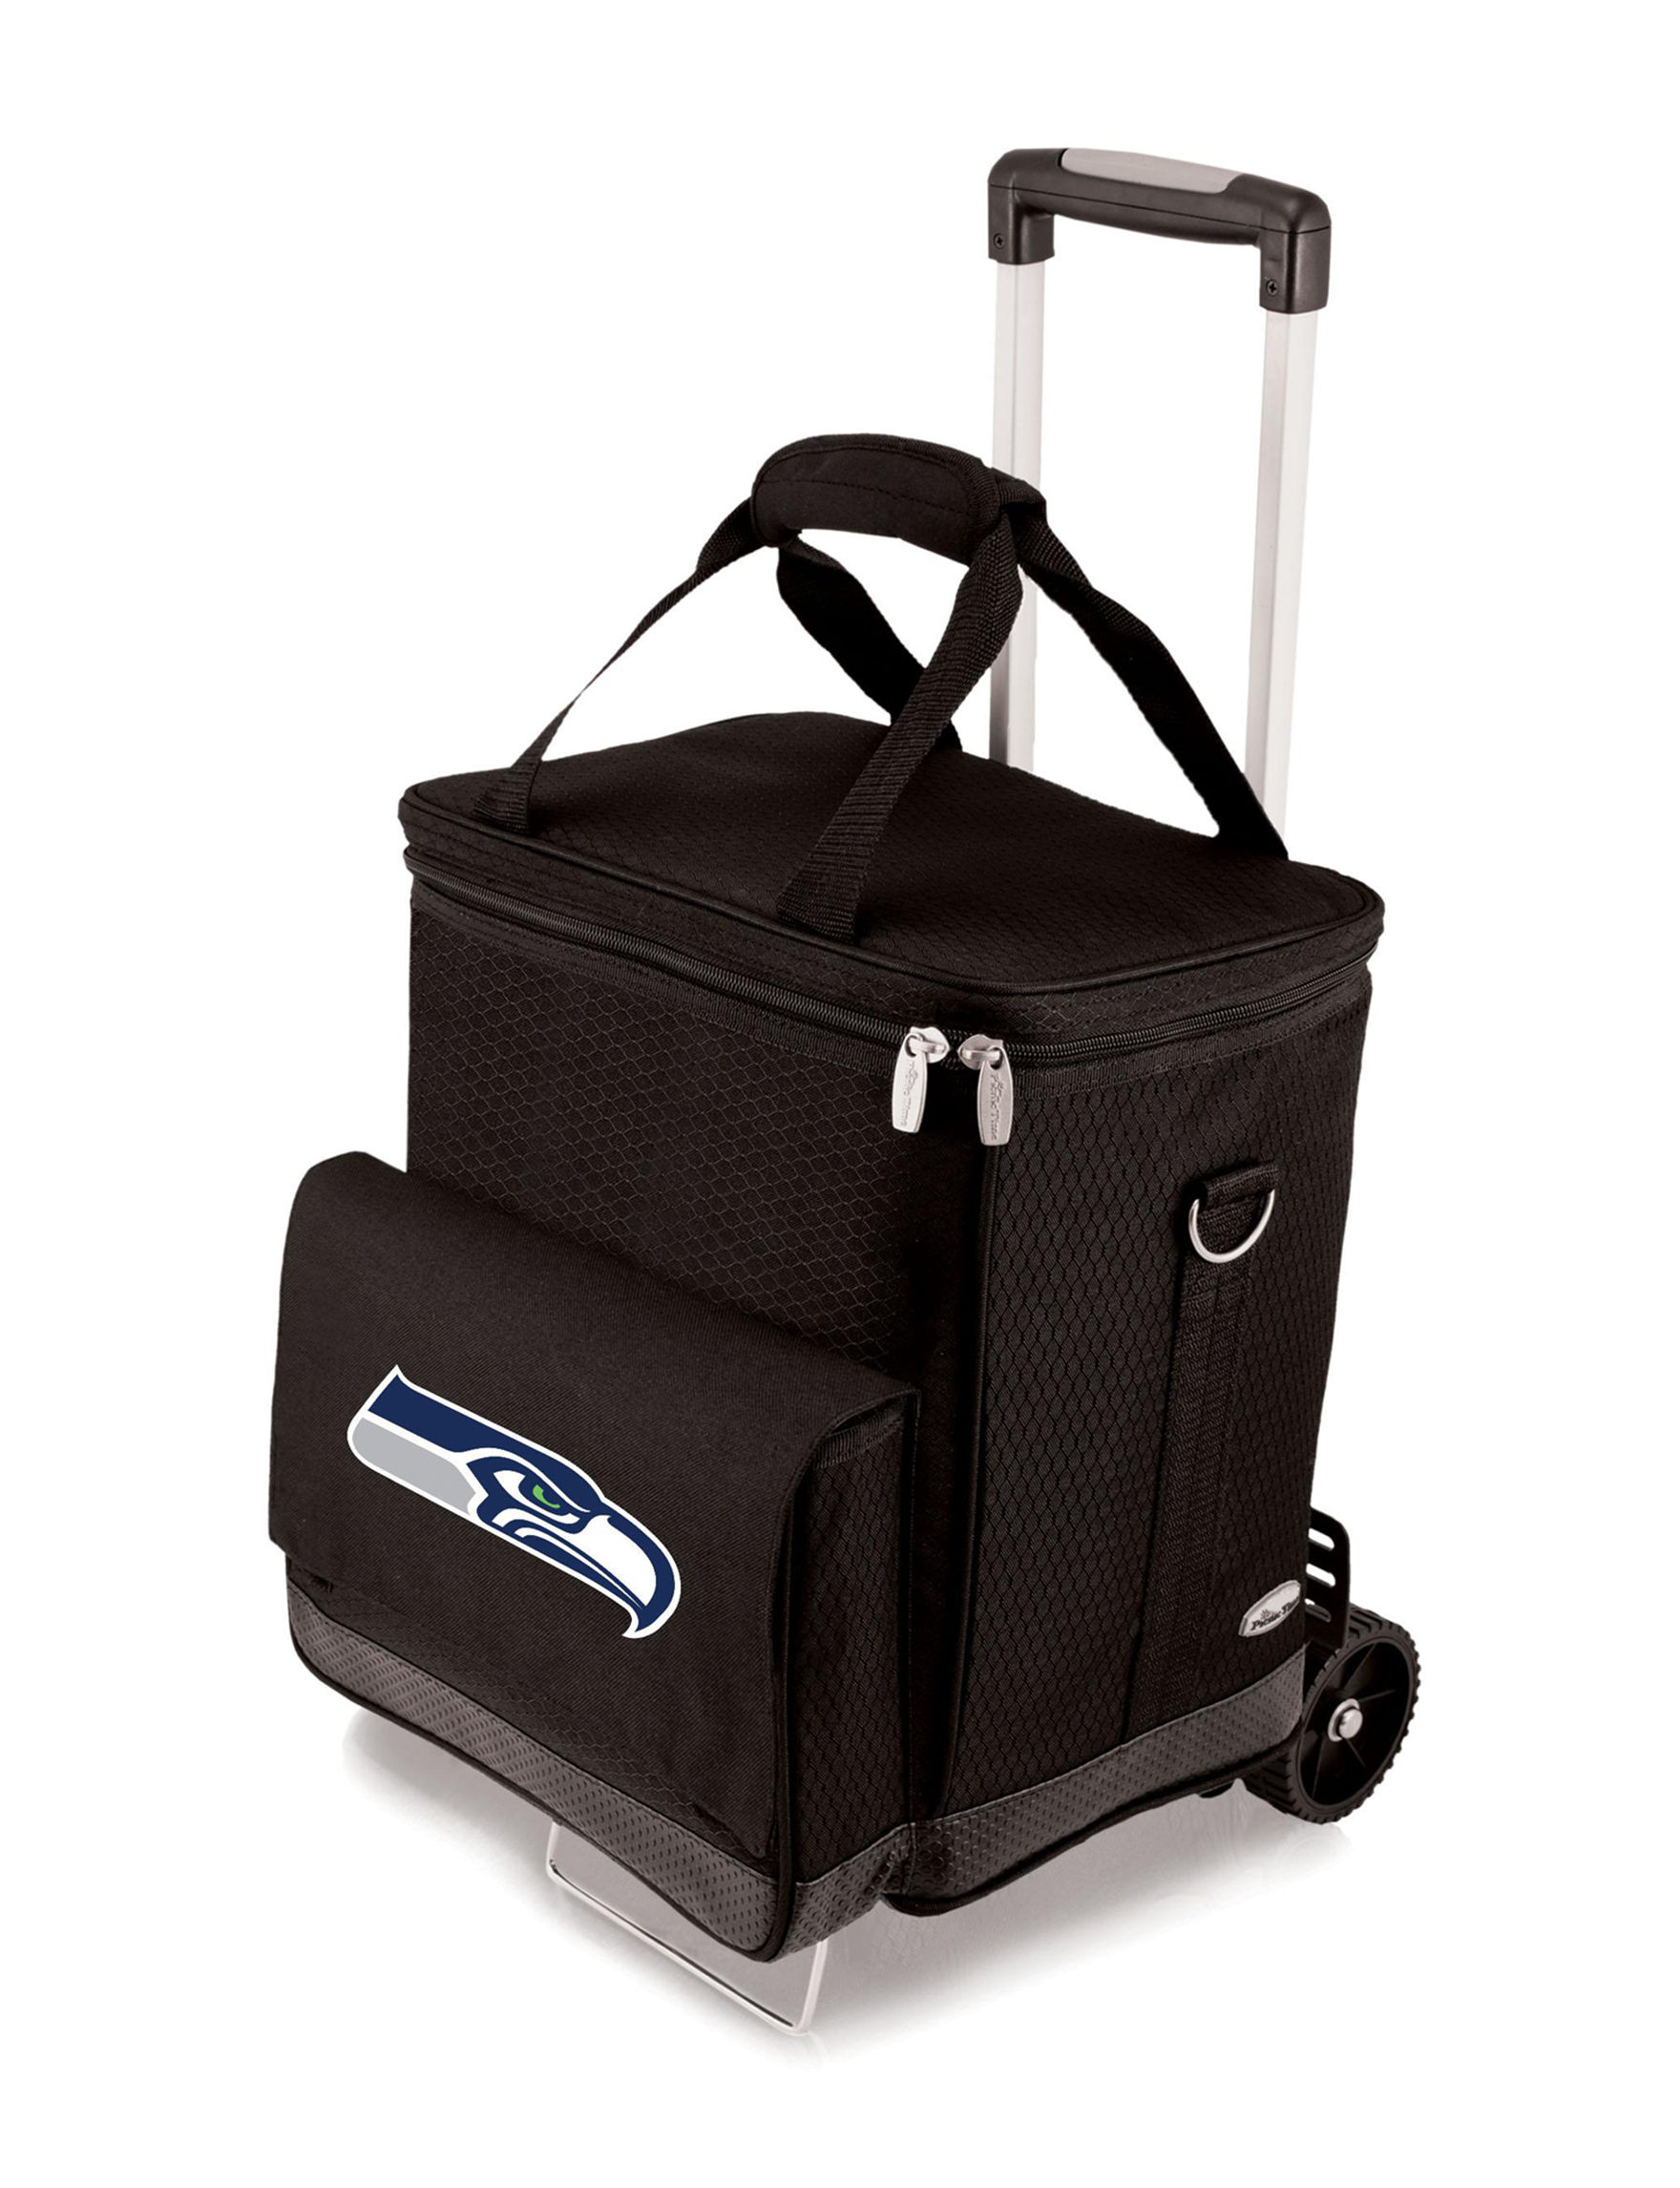 Picnic Time Black Carriers & Totes Coolers Camping & Outdoor Gear Outdoor Entertaining